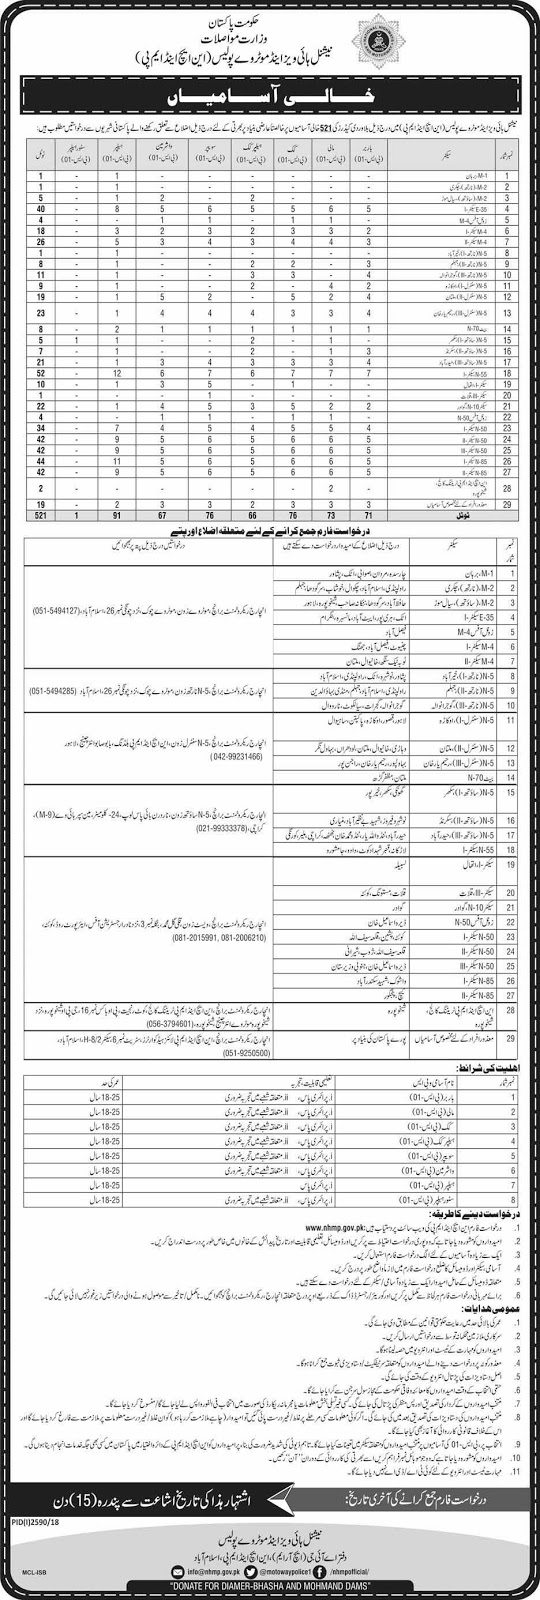 500+ Jobs in National Highway and Motorway Police NH MP Jobs Dec 2018